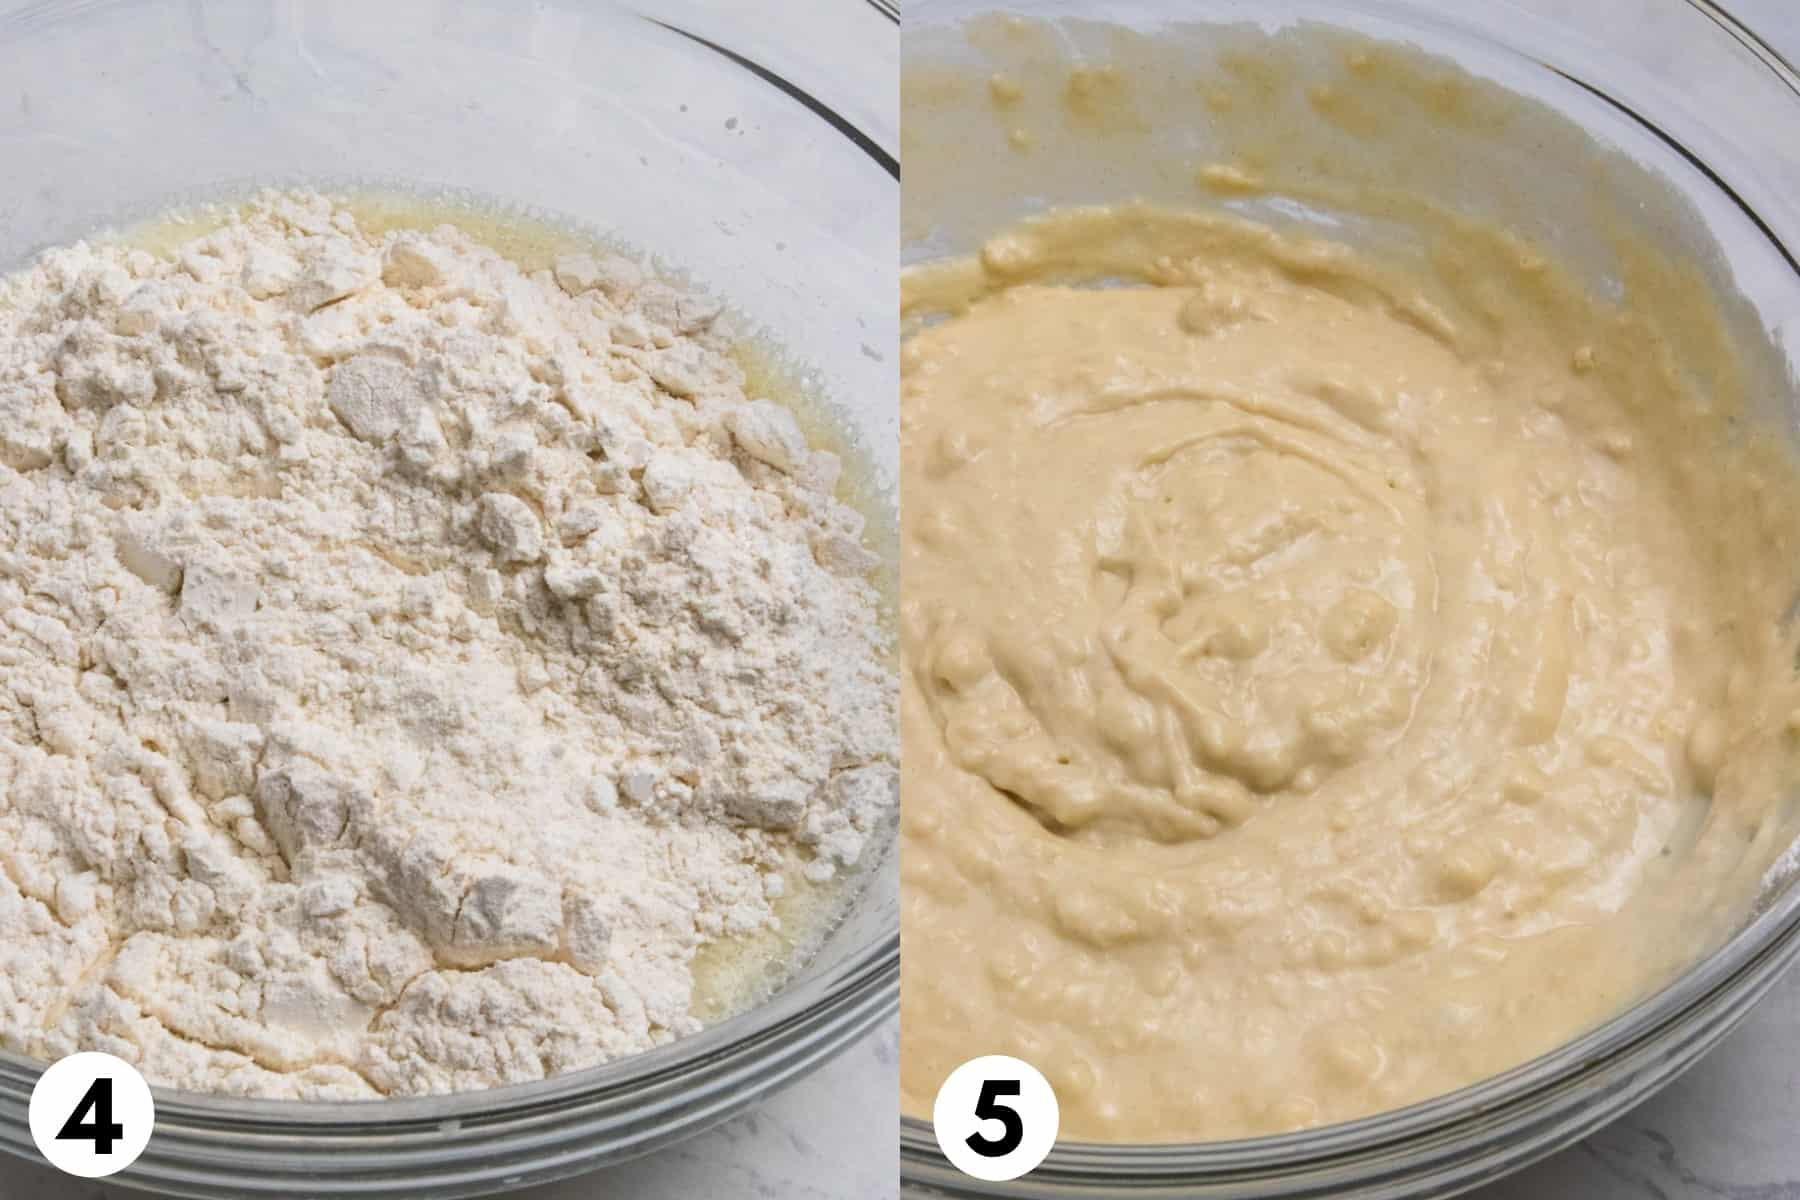 Flour mixture stirred in bowl with egg mixture.